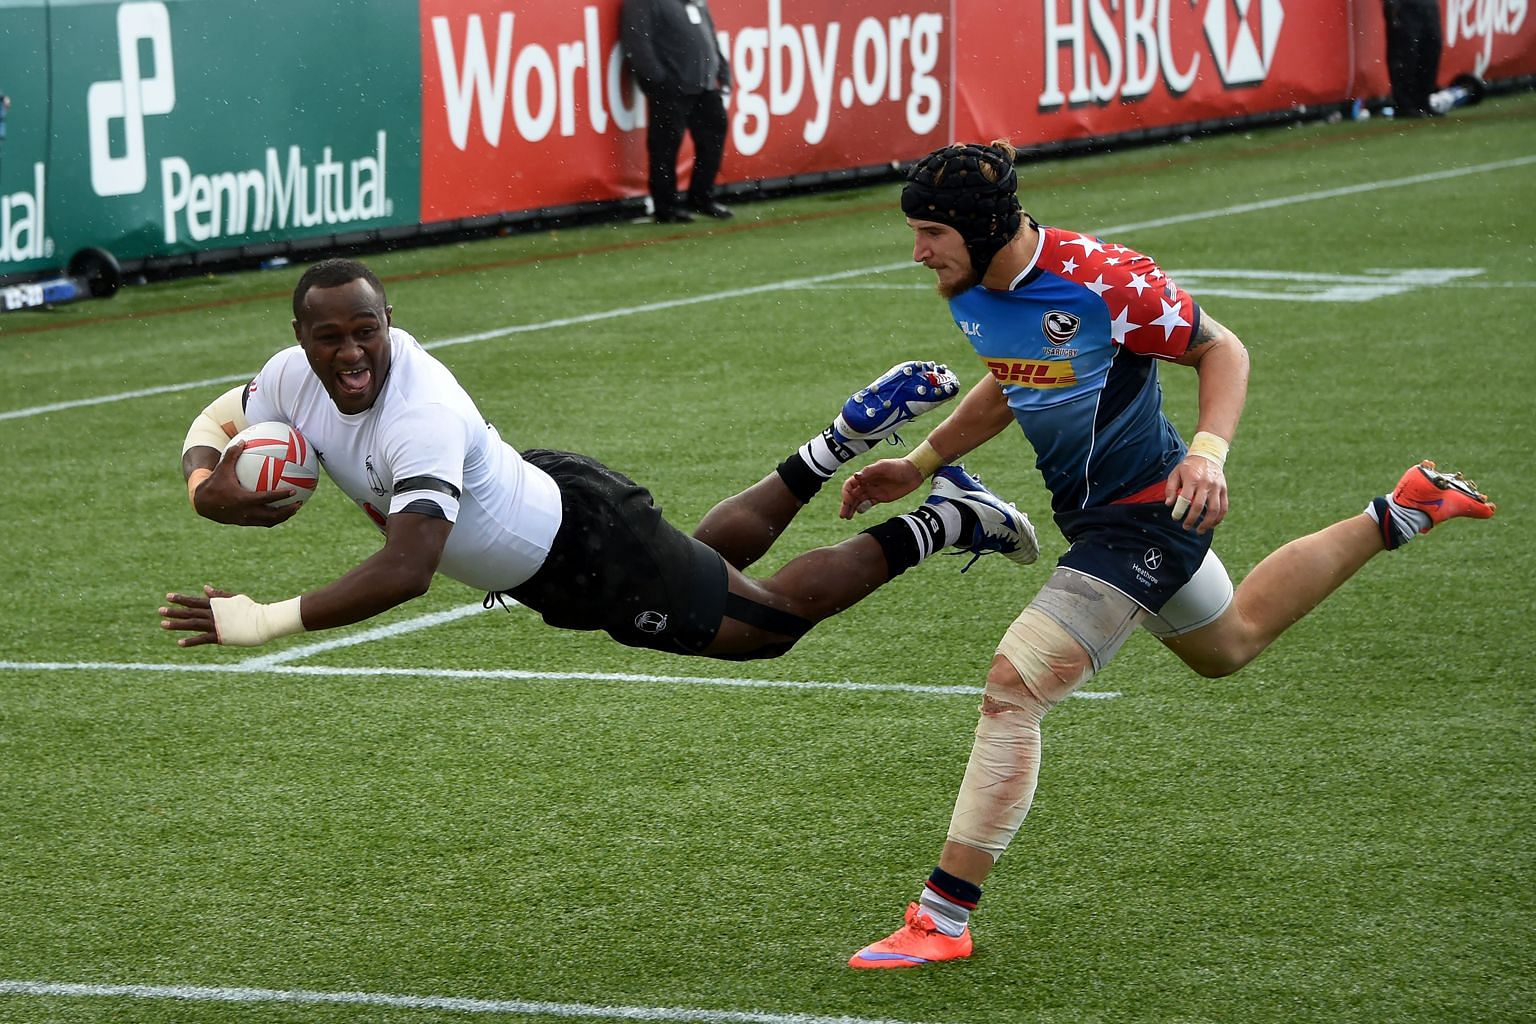 Pio Tuwai diving for a try as Garrett Bender of the US fails to stop him in their semi-final. Fiji beat Australia in the Las Vegas final.